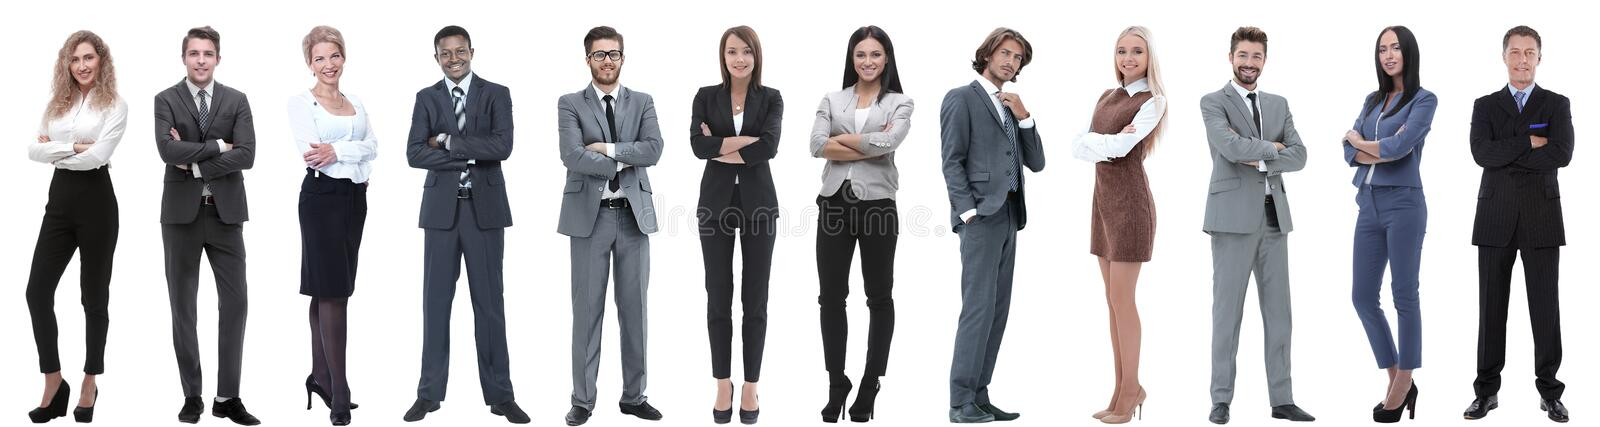 Group of successful business people isolated on white royalty free stock photos